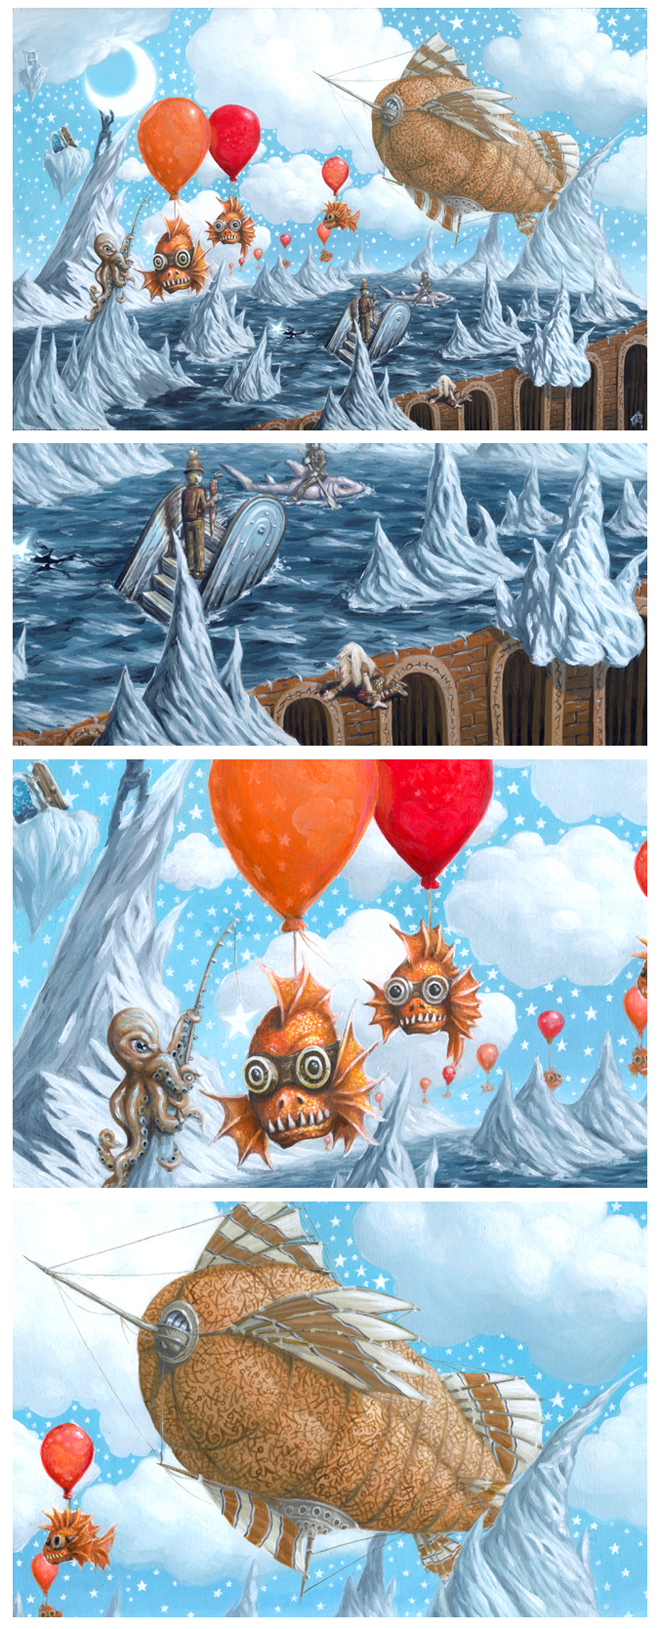 Edge of Dreams Steampunk Surreal Airship Childrens Painting